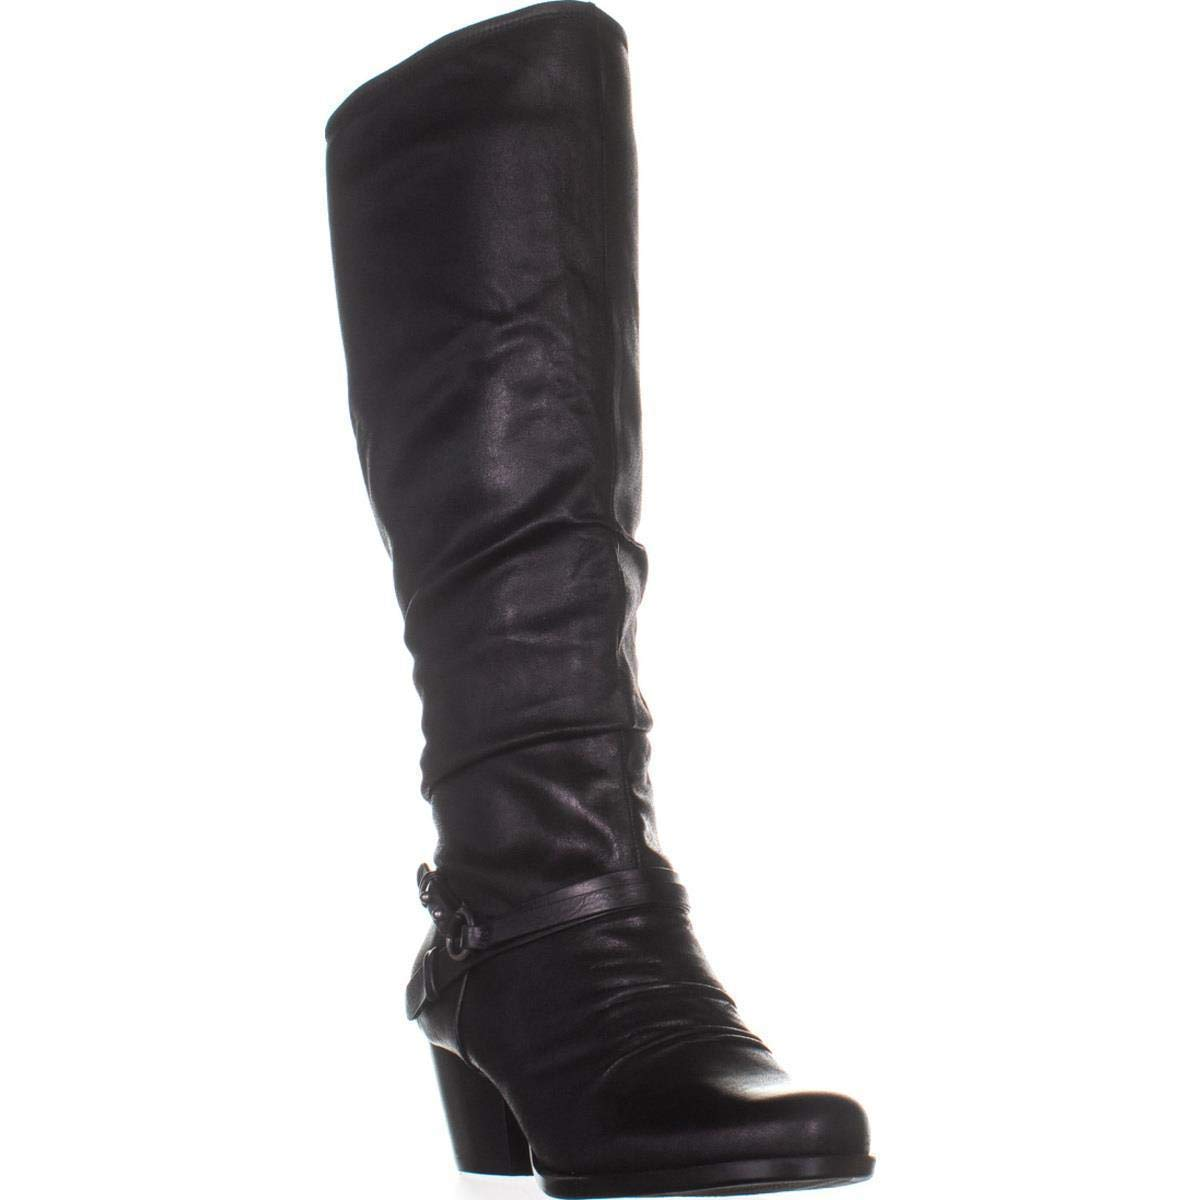 Brush Brown Bare Traps Womens Roz Fabric Almond Toe Knee High Fashion Boots